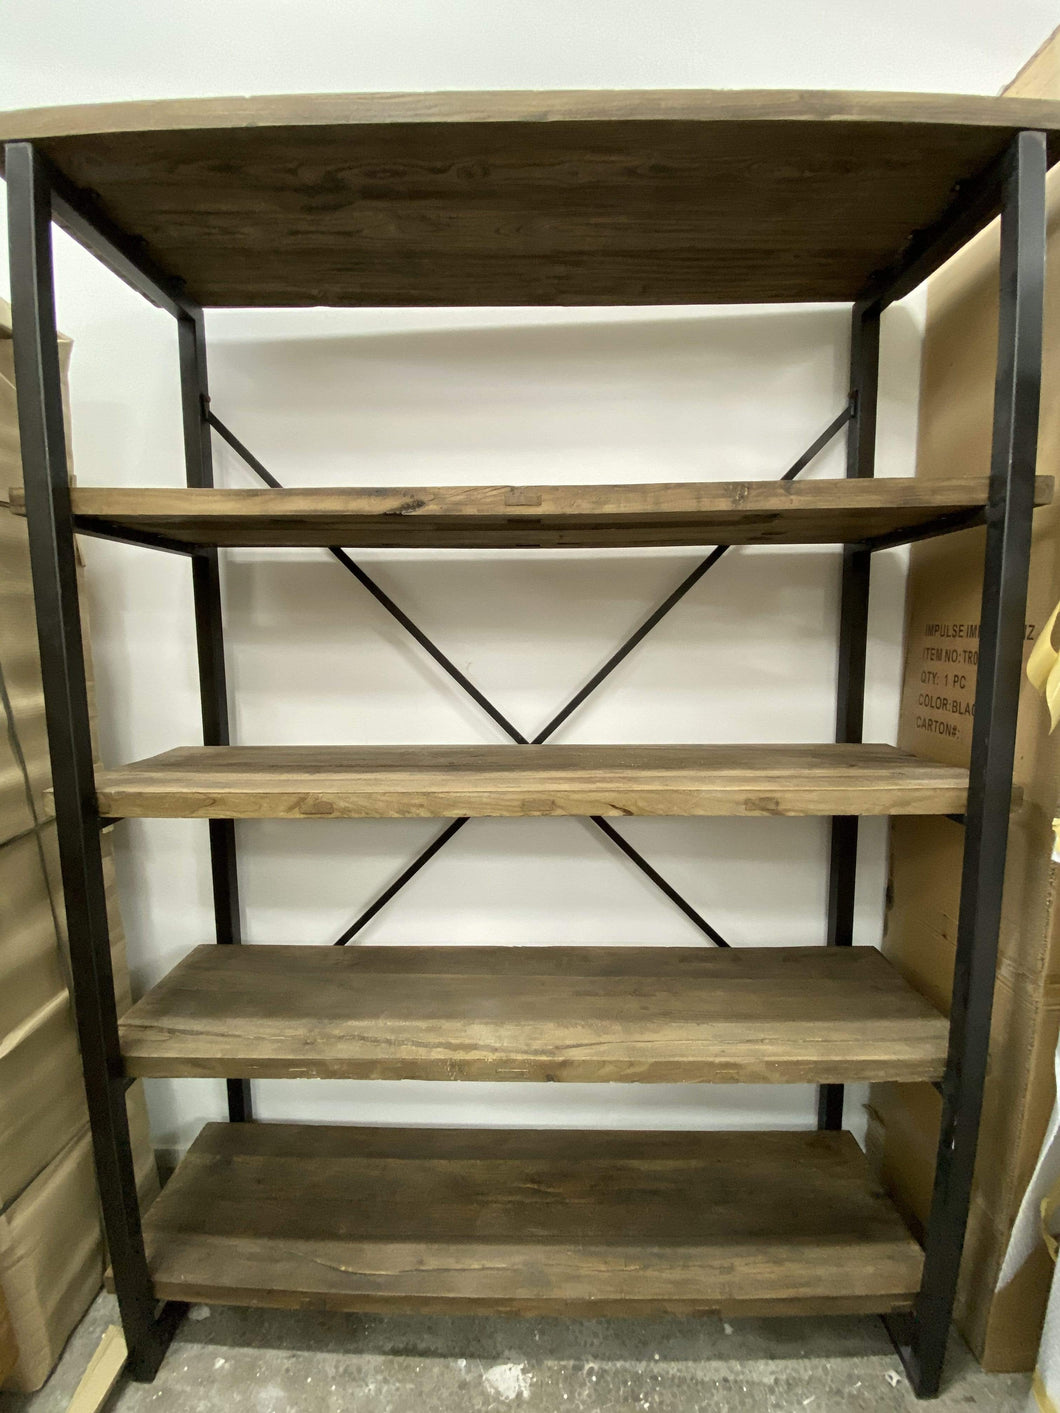 XL Bookcase - Recycled Fir Wood & Metal